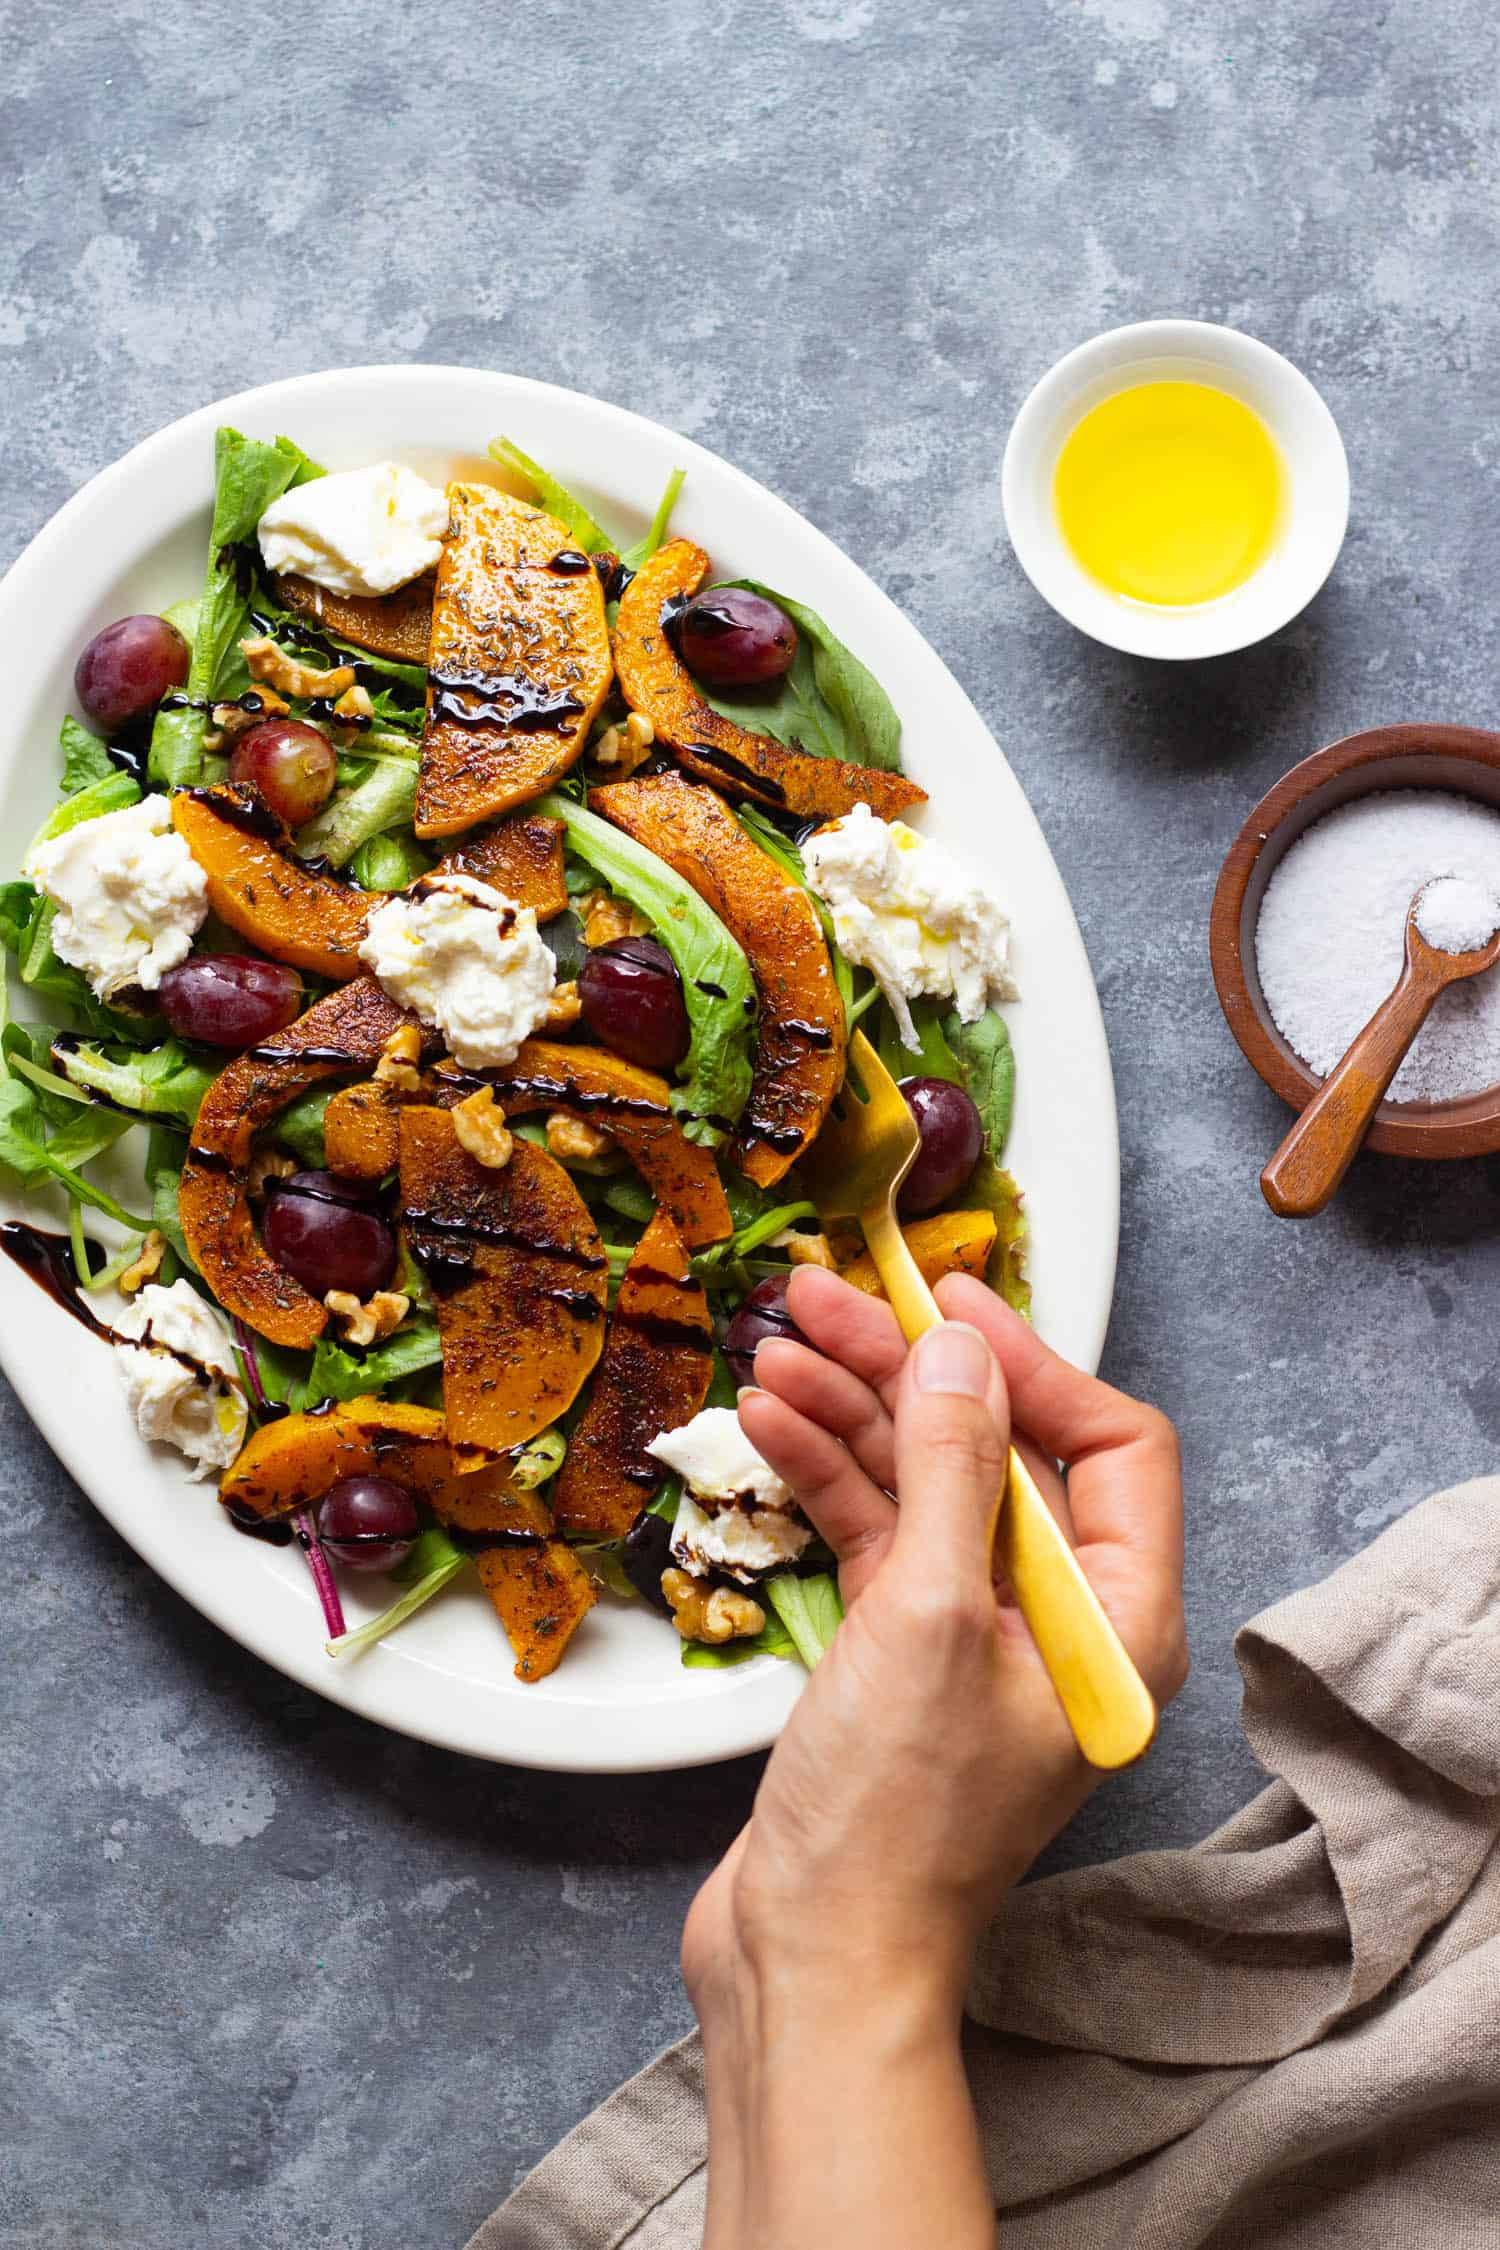 Roasted butternut squash salad topped with burrata and balsamic vinaigrette.